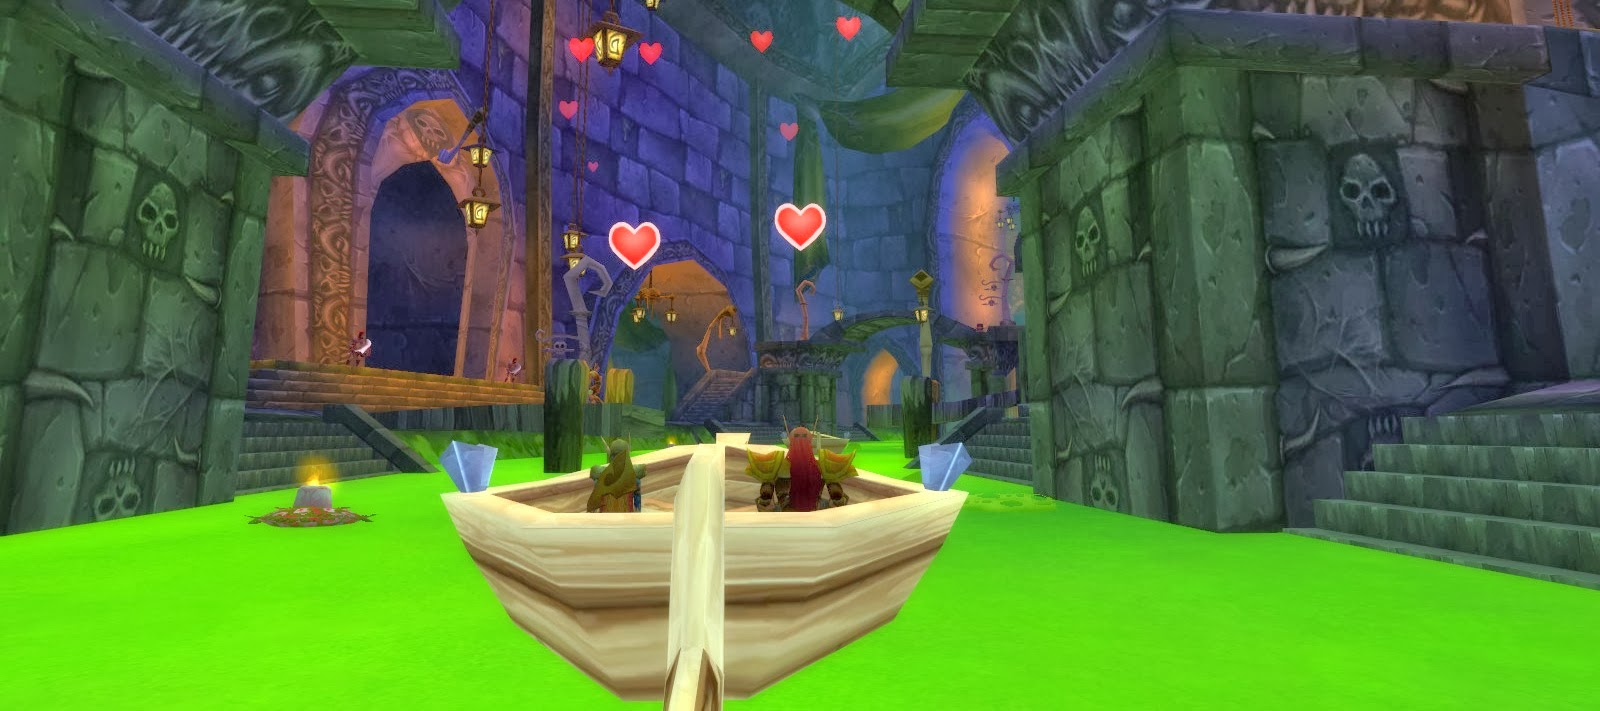 Ahh! Nothing is more romantic than a gondola ride through a sewer.